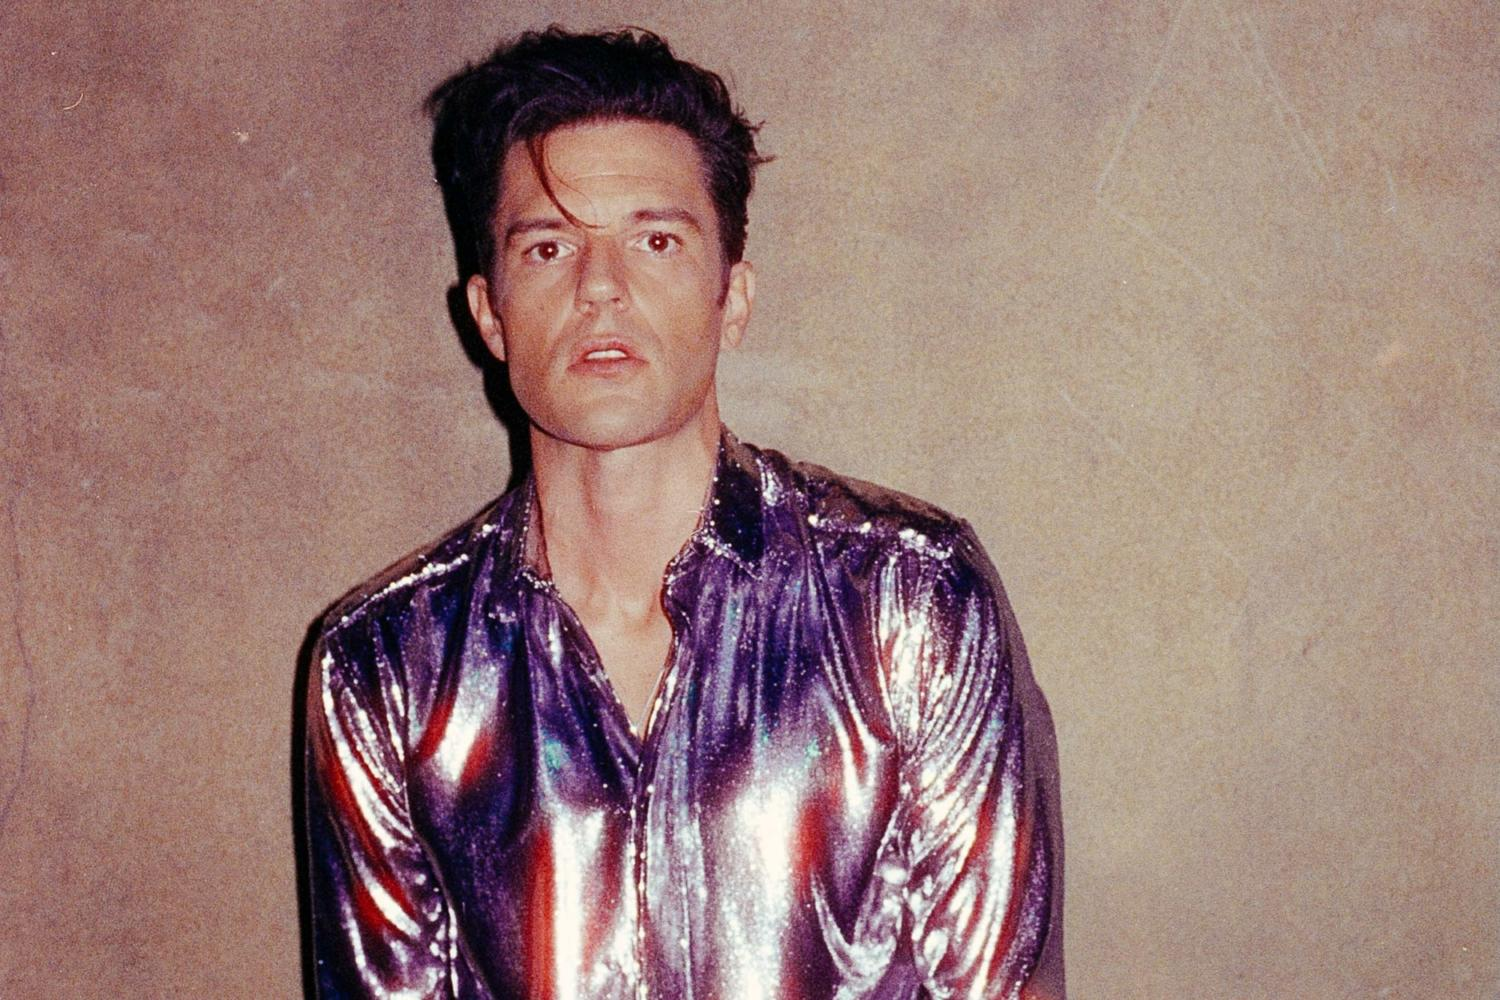 The Killers to release new song 'Caution' this week